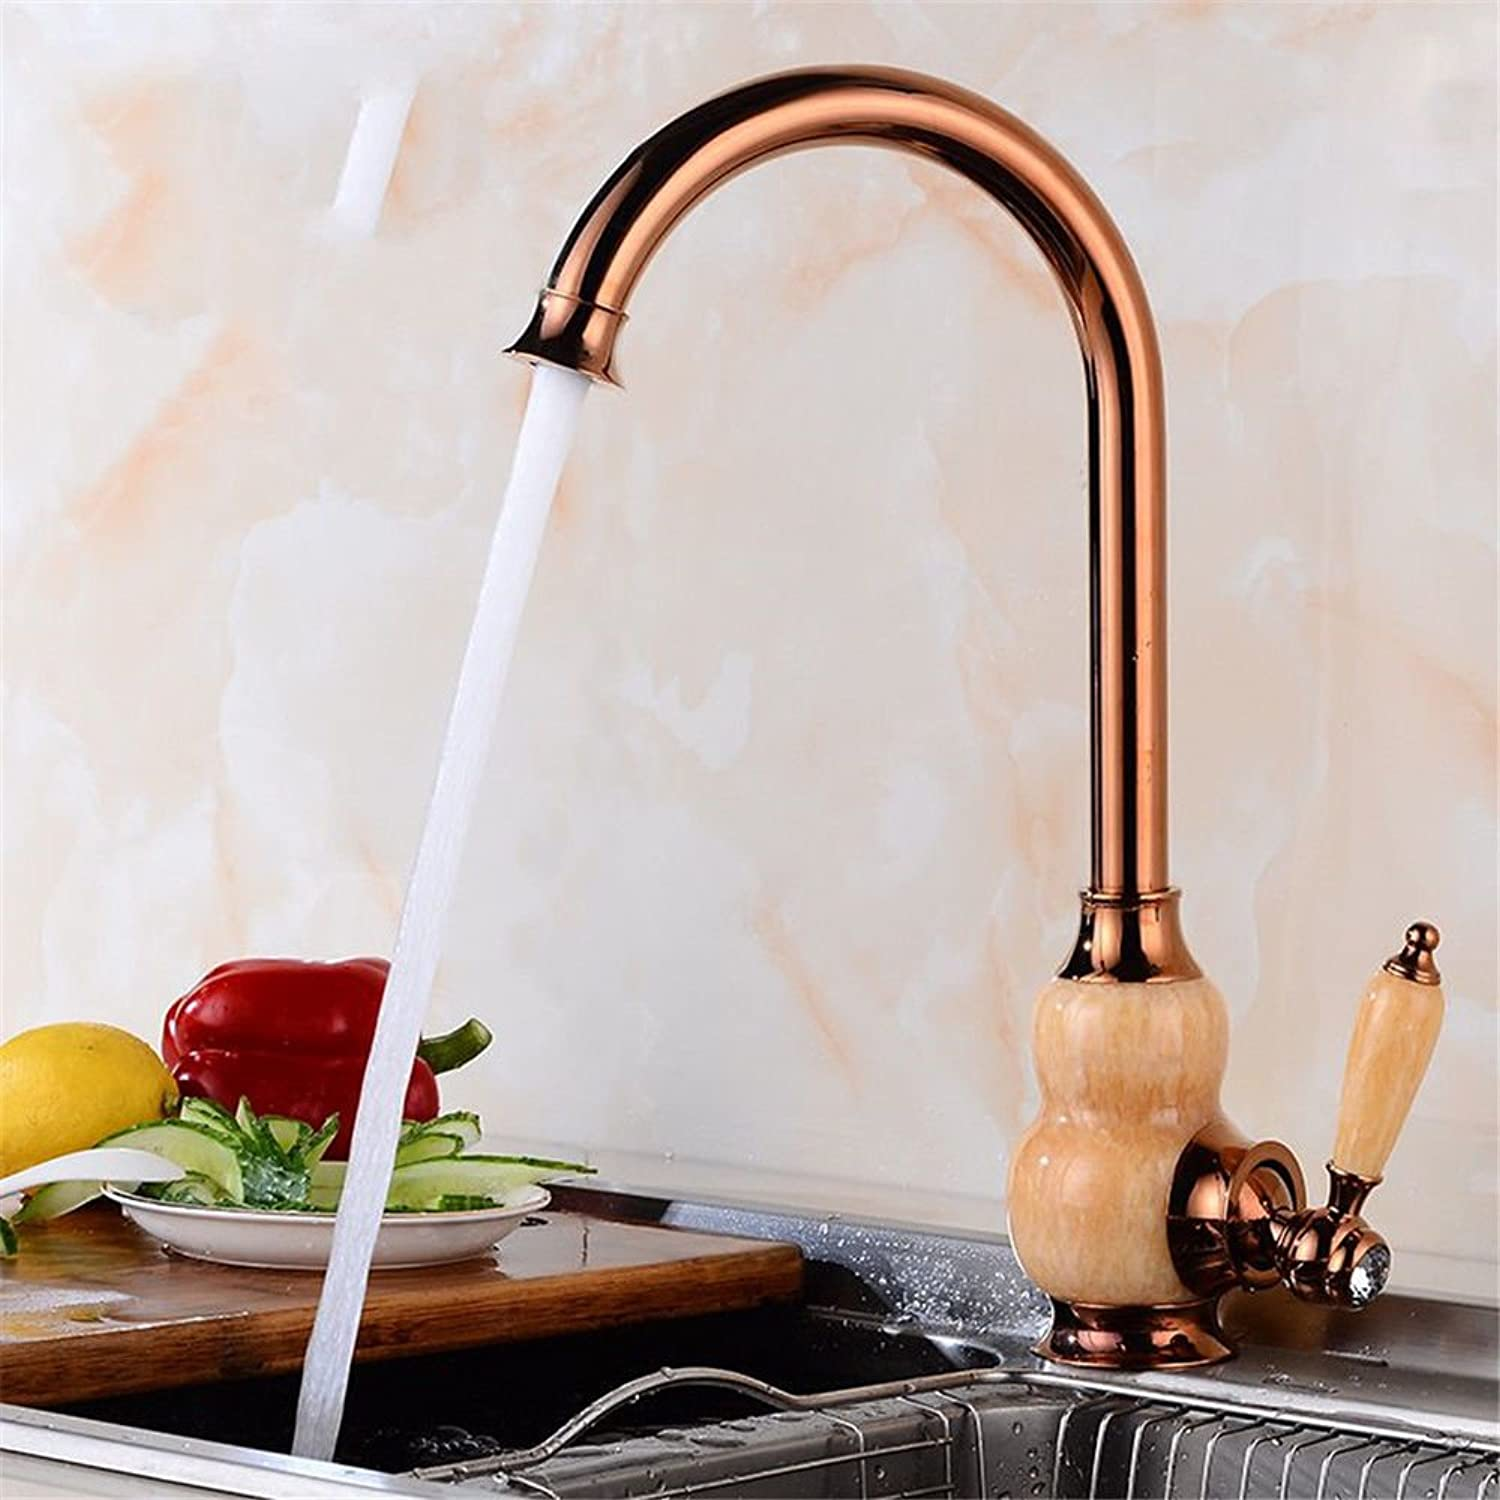 NewBorn Faucet Kitchen Or Bathroom Sink Mixer Tap Pure Copper bluee-Tiled Full Copper Antique Antique Table Hot And Cold Basin Sinks Water Tap S C